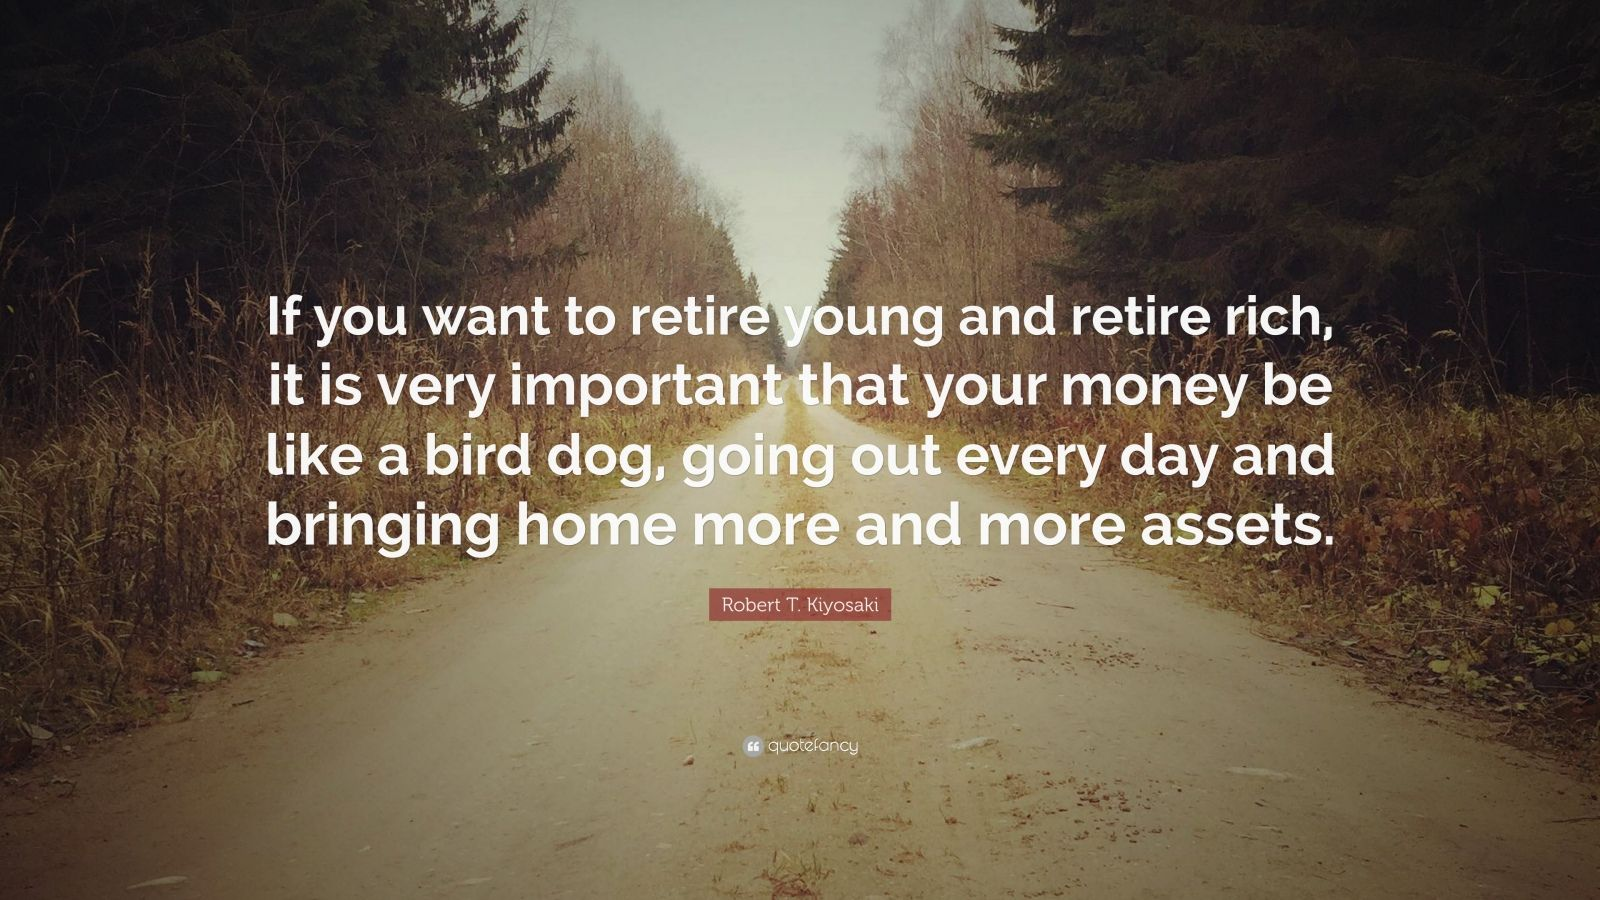 "Robert T. Kiyosaki Quote: ""If you want to retire young and retire rich, it is very important that your money be like a bird dog, going out every day and bringing home more and more assets."""